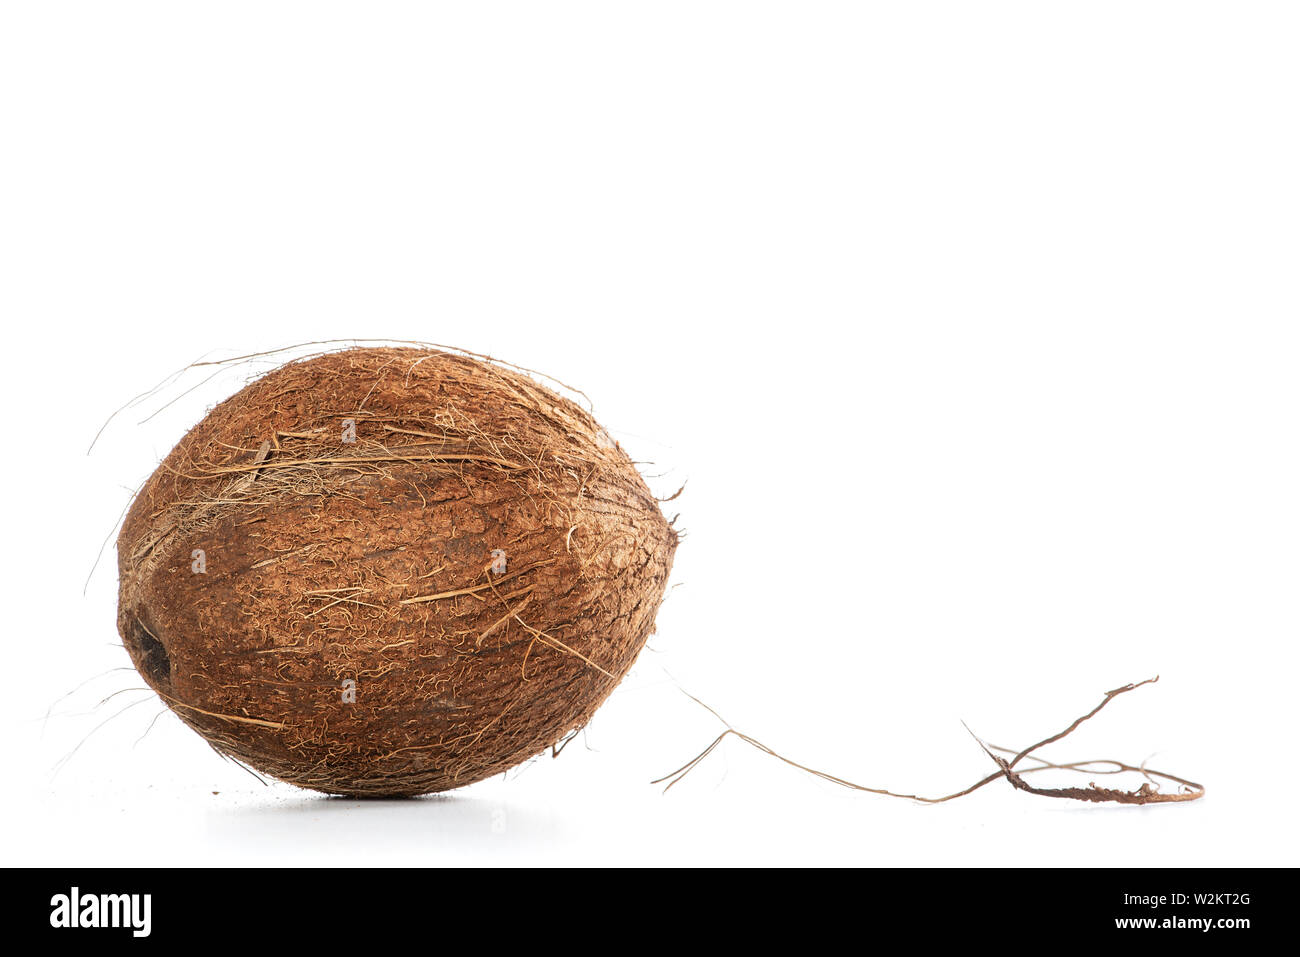 Dominican coconut on white background, with copy space for text Stock Photo